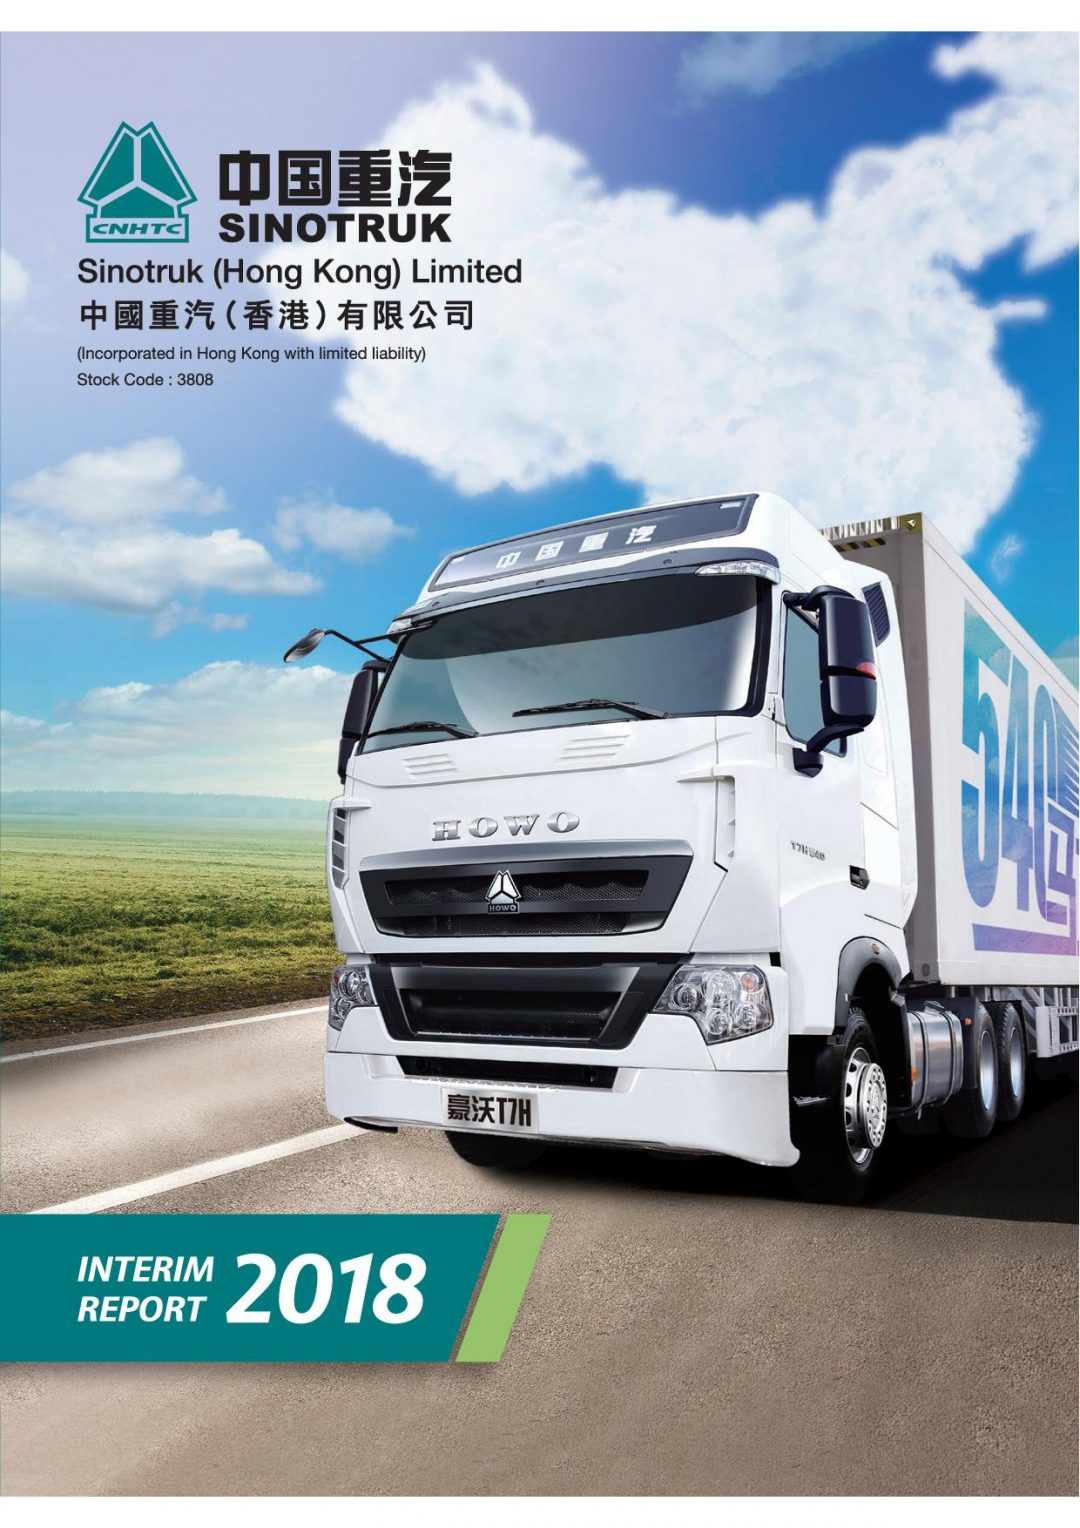 Sinotruk (Hong Kong) Limited